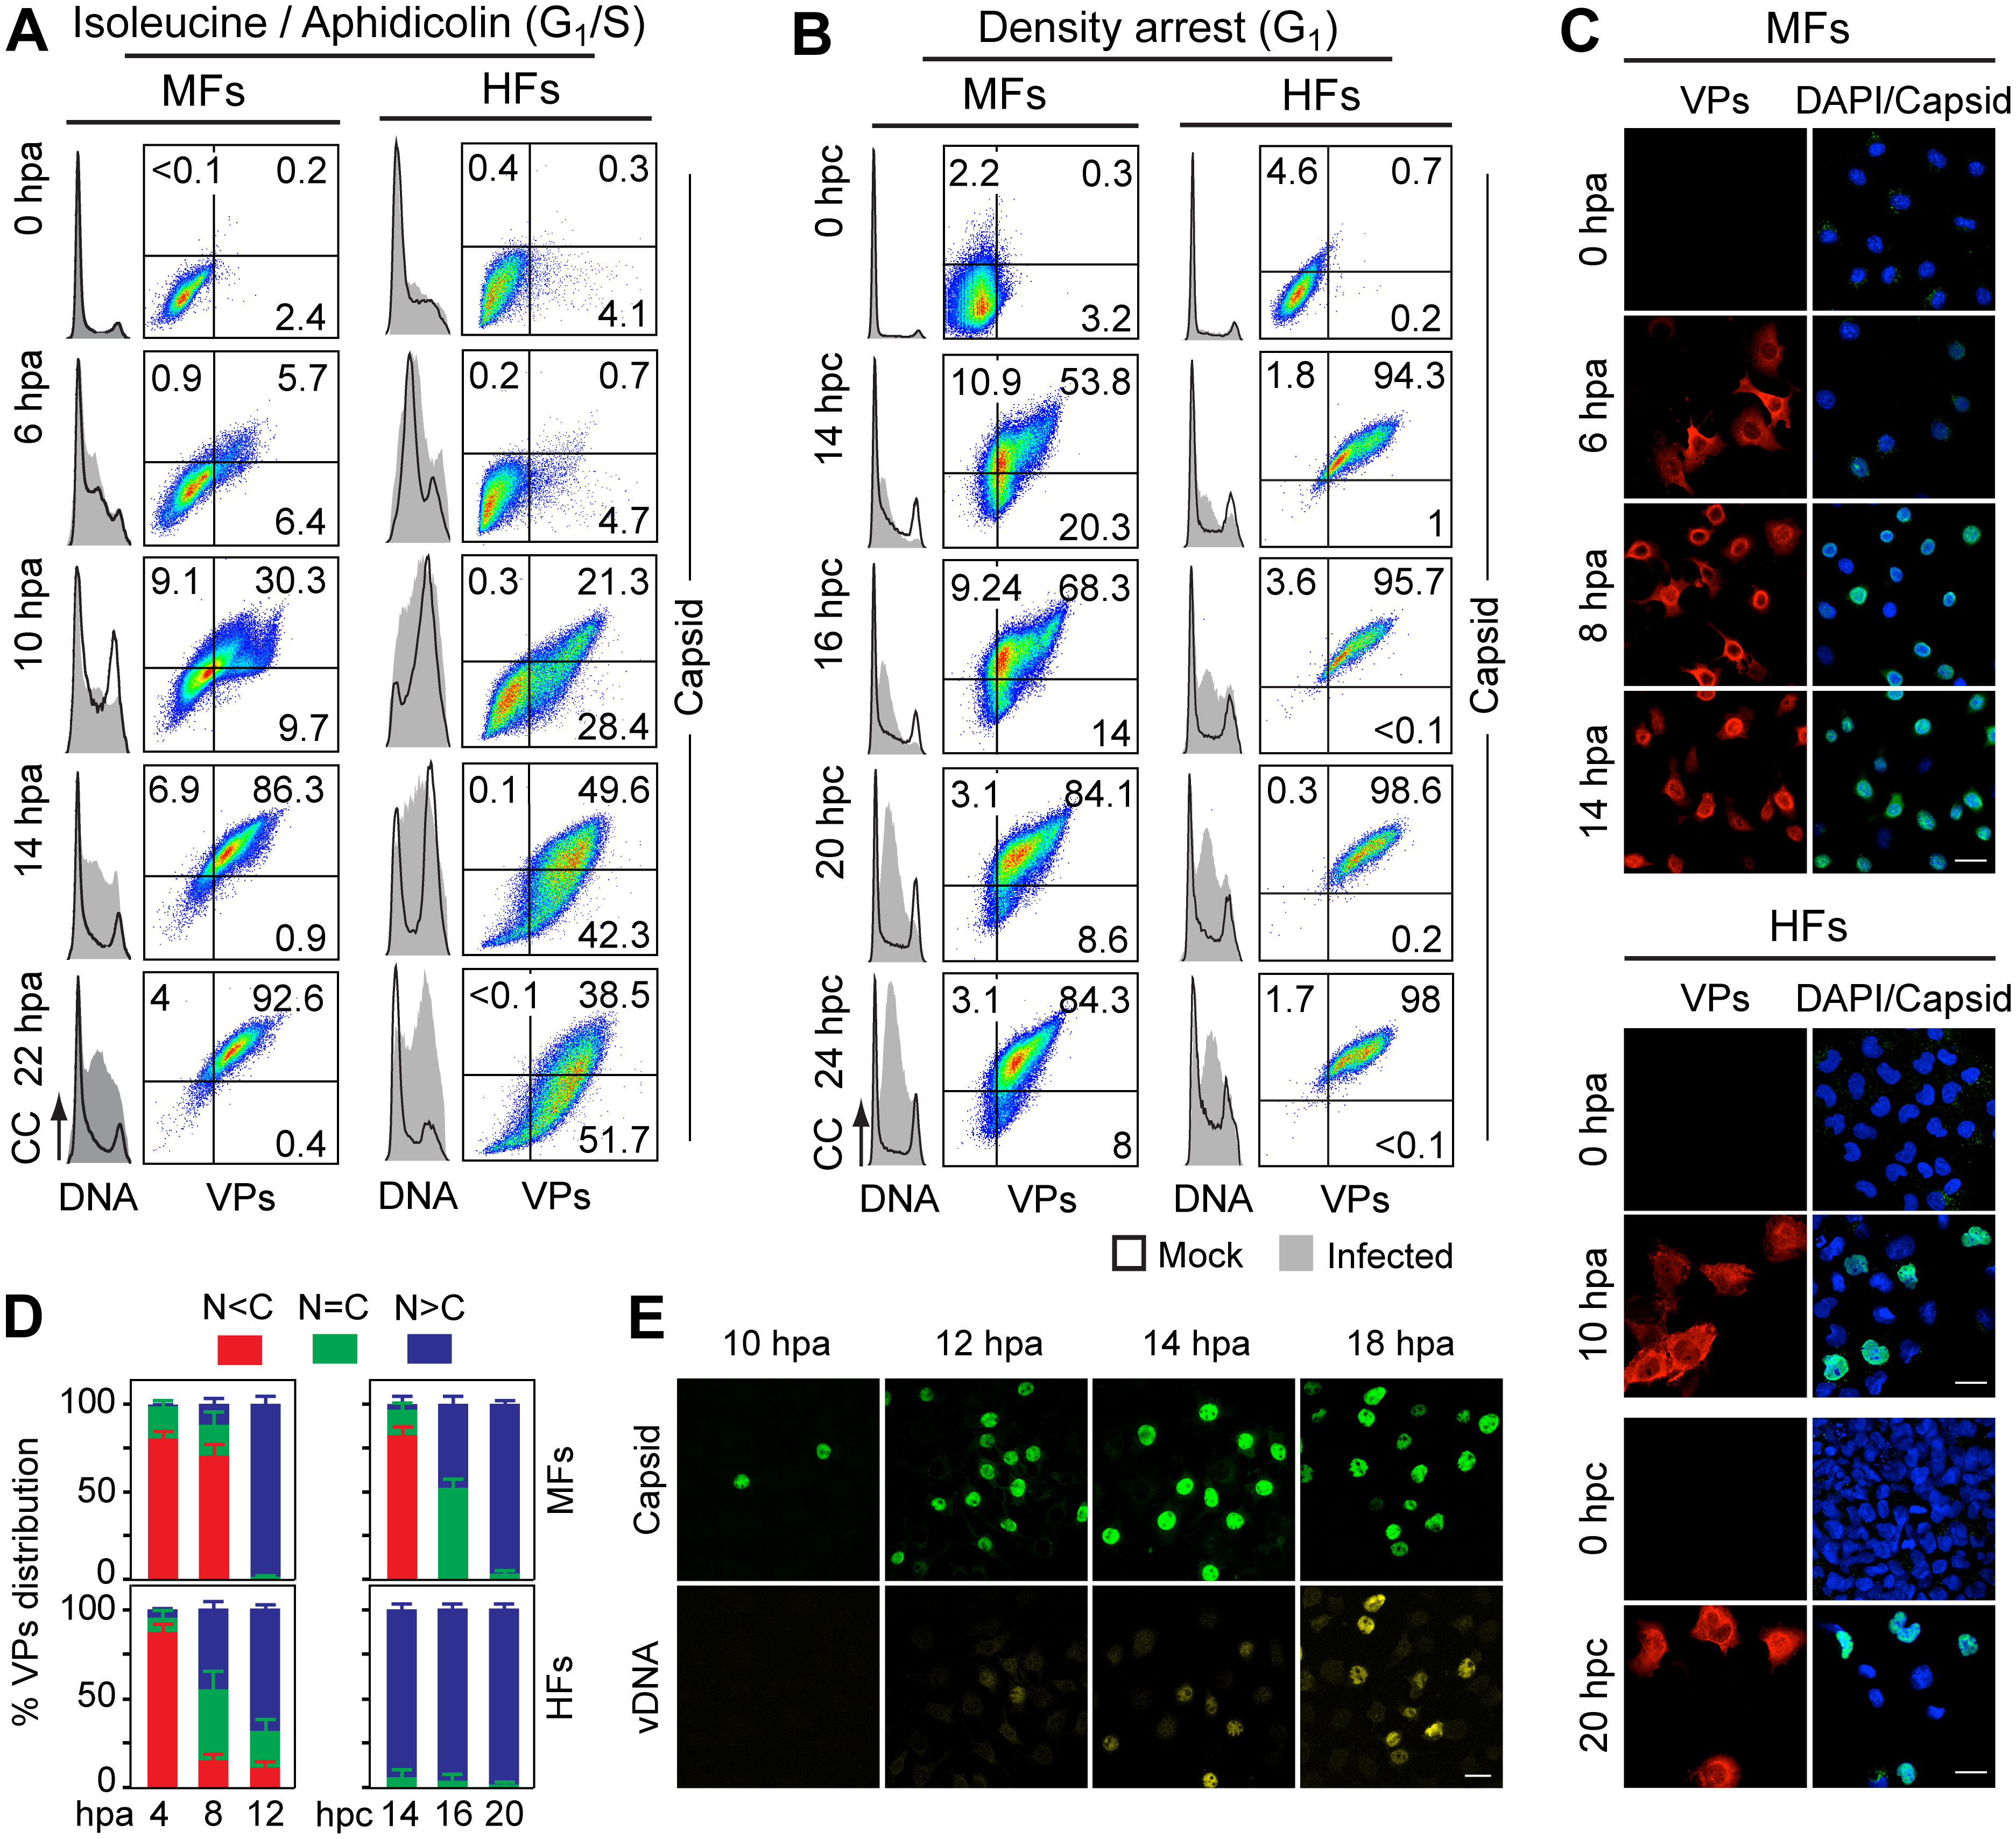 Cell cycle dependence of VPs expression and capsid assembly in the synchronous MVM infection of mammalian fibroblasts.